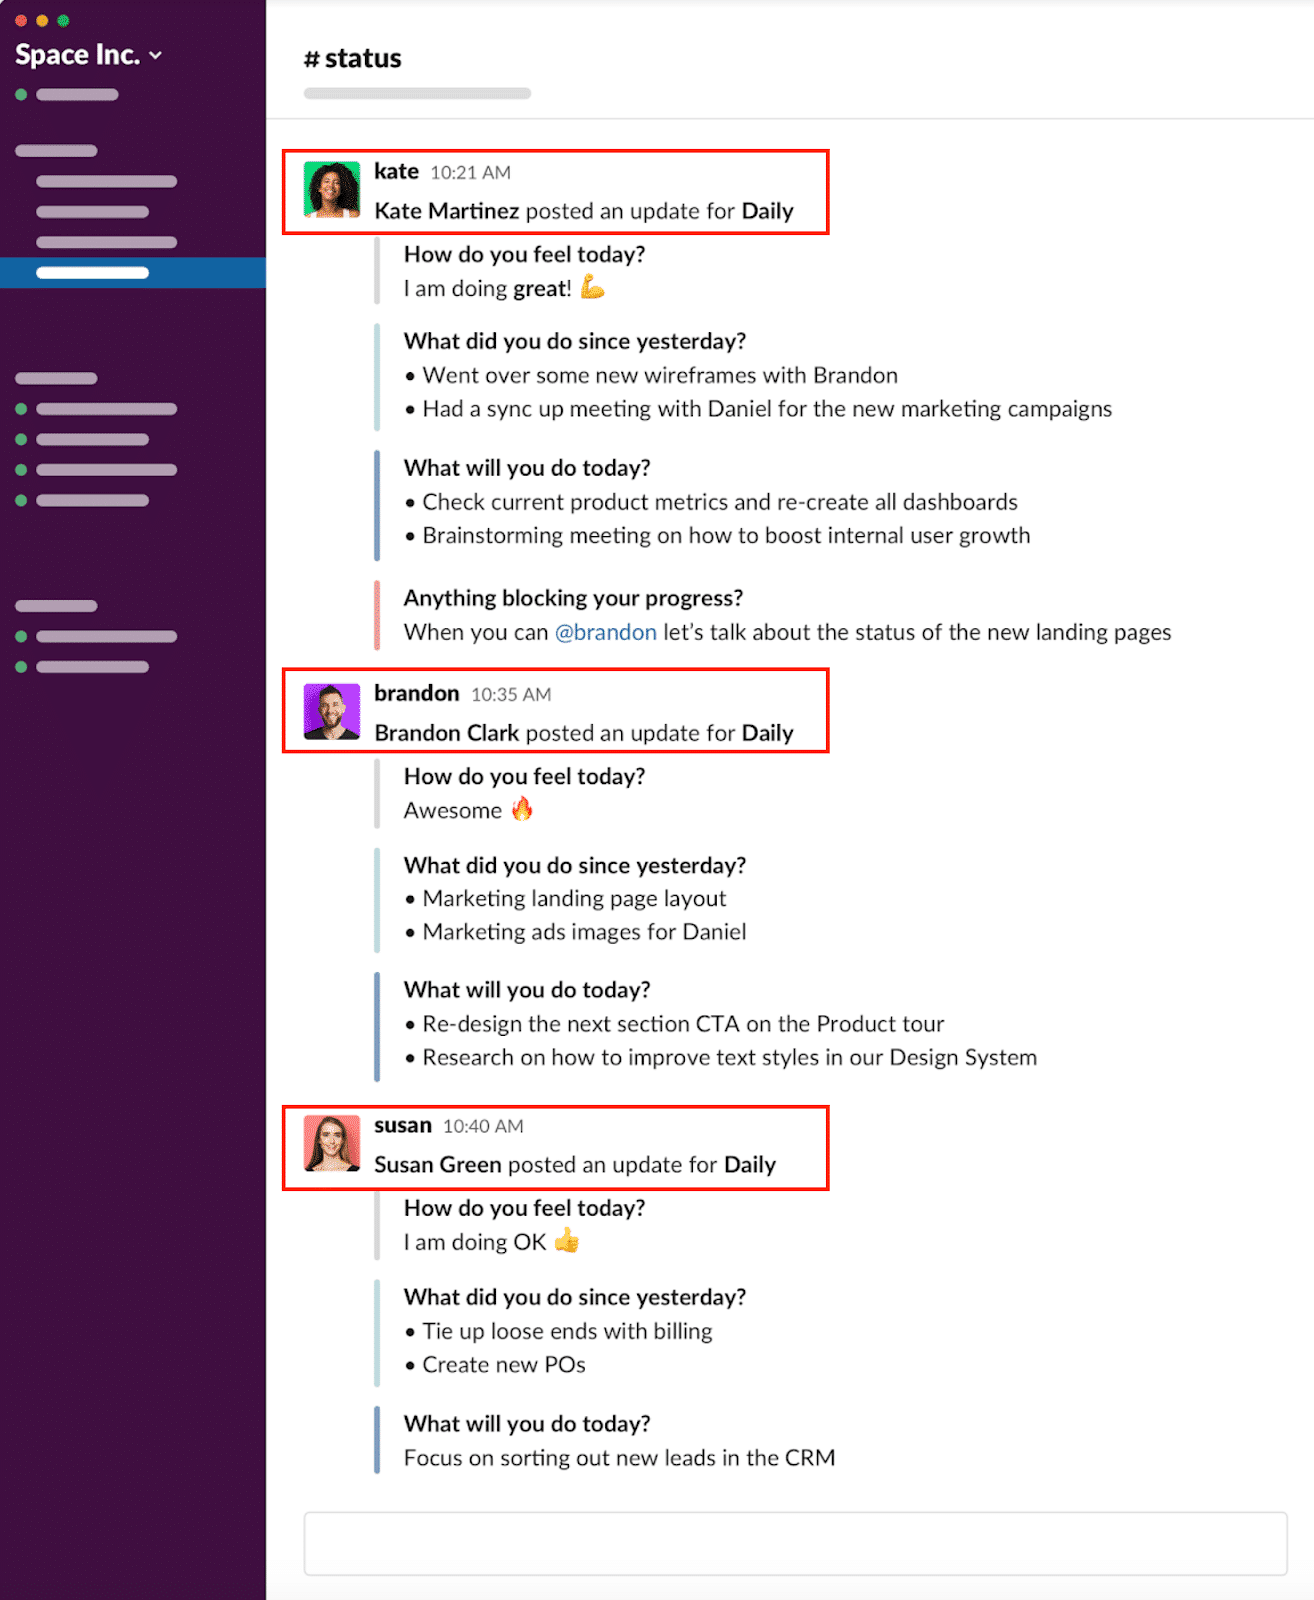 Get notified within the Slack channel whenever your coworkers respond with a daily update.